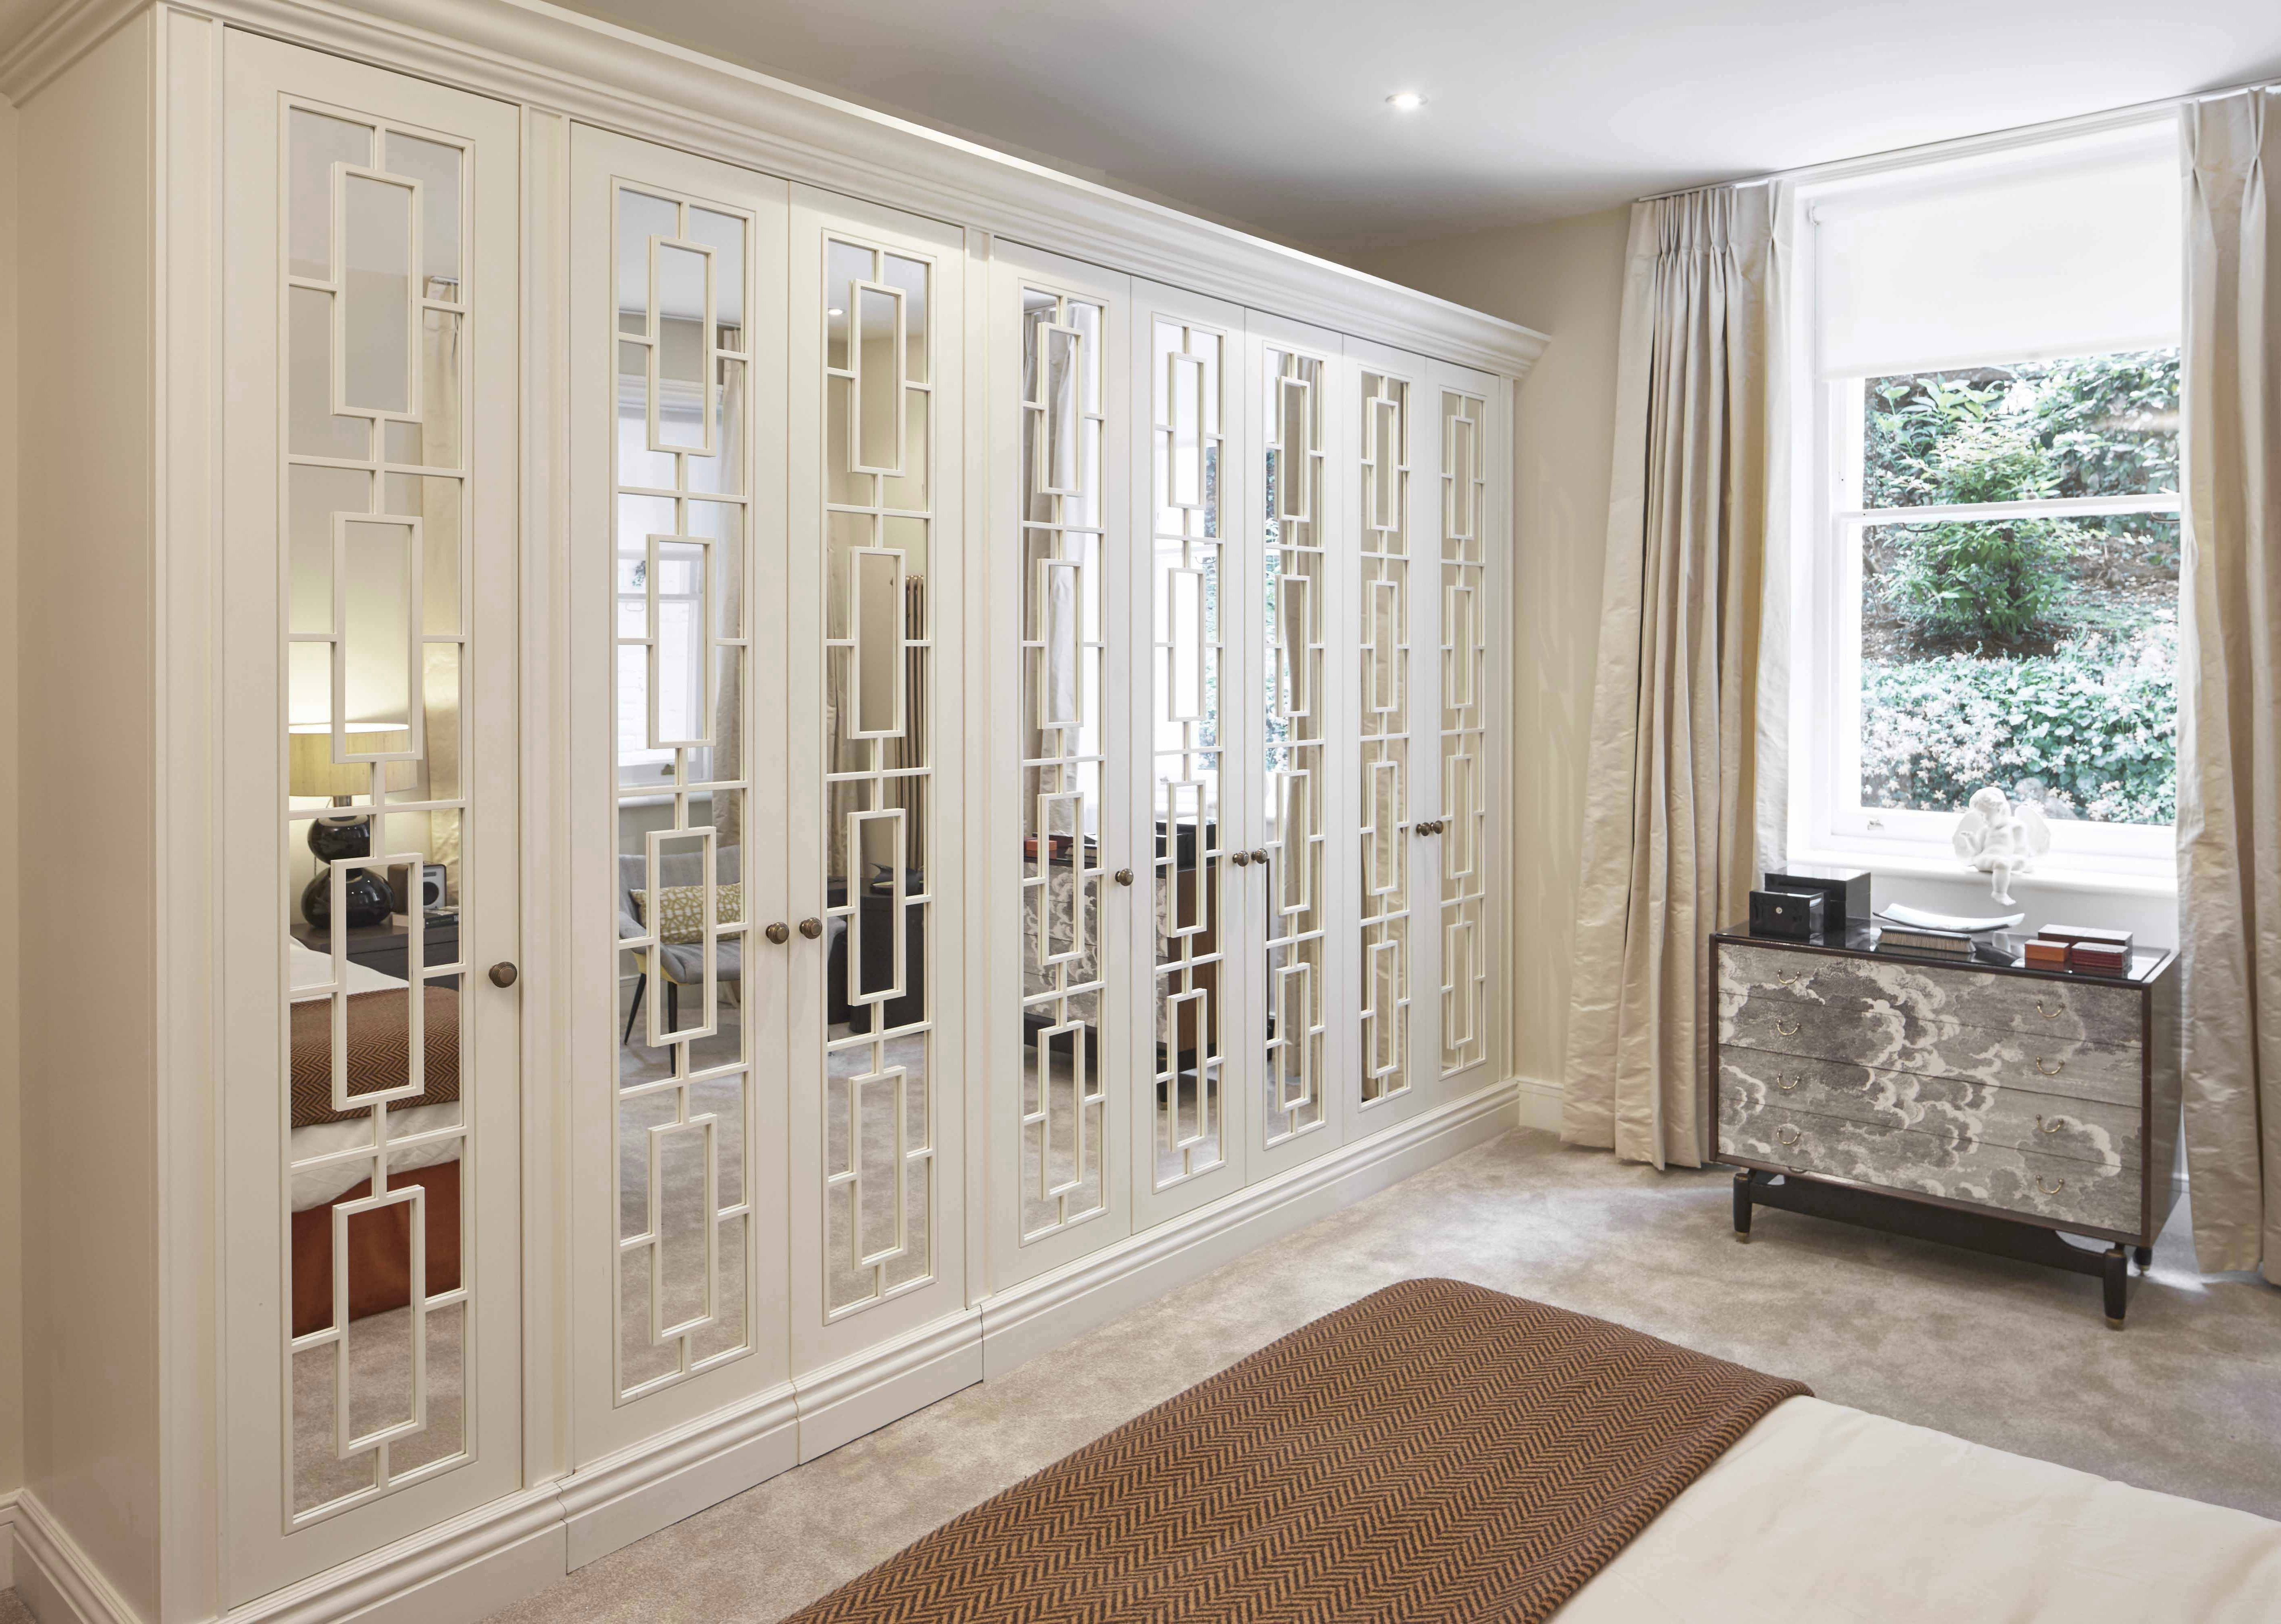 Imperial Wardrobes For 2017 Bespoke Wardrobe London – Imperial – The Heritage Wardrobe Company (View 5 of 15)